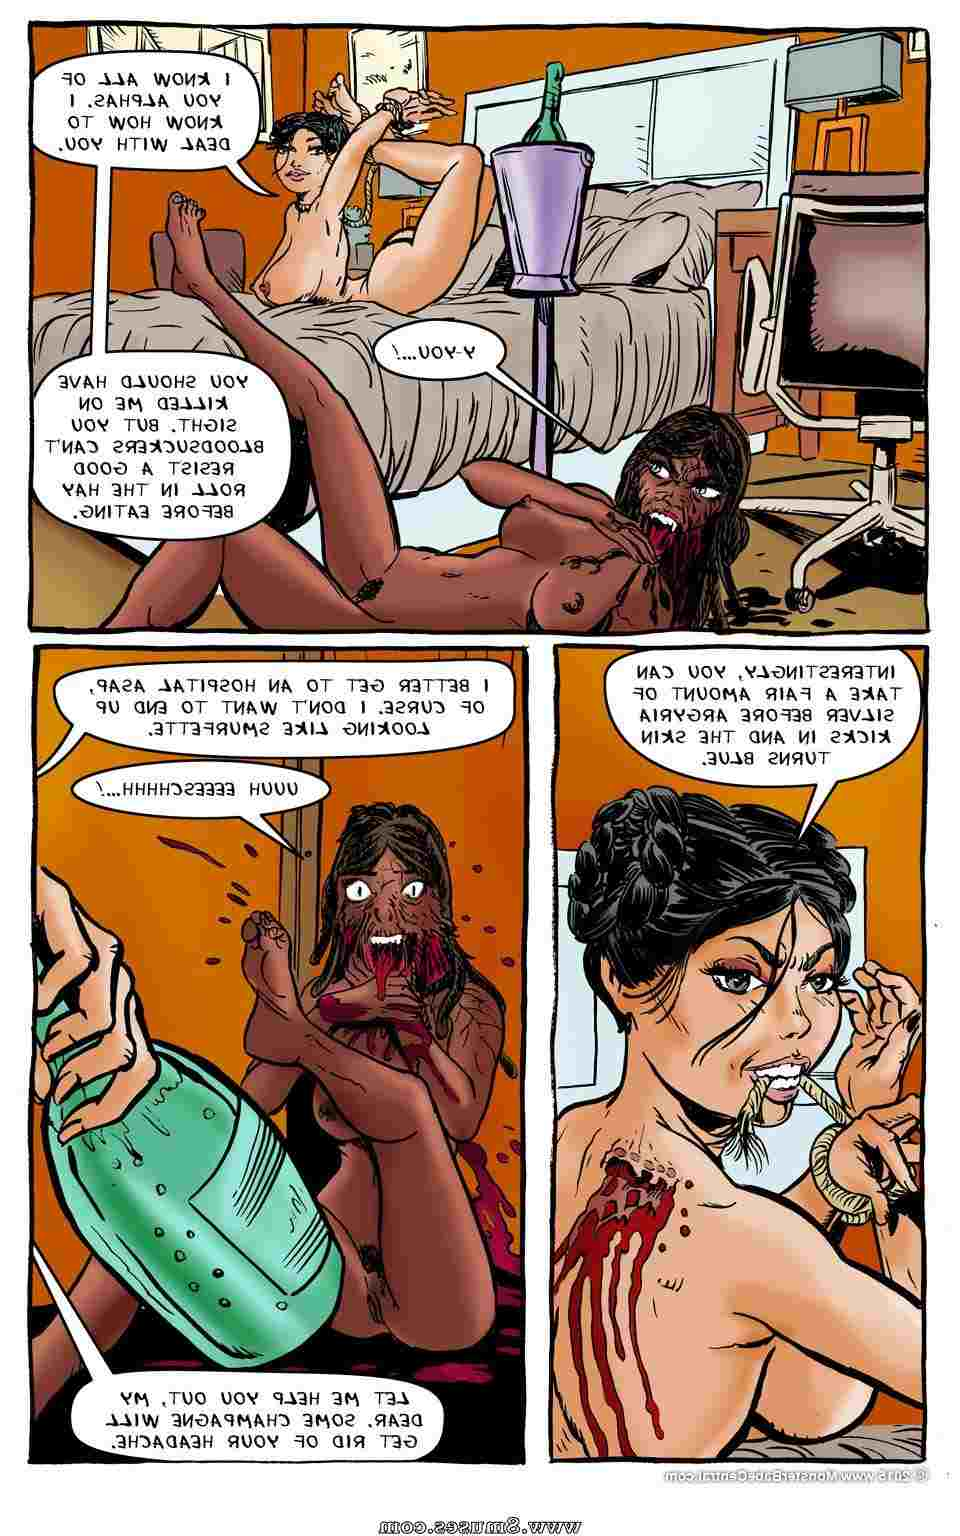 Central-Comics/Monster-Babe-Central/Monster-Channel Monster_Channel__8muses_-_Sex_and_Porn_Comics_204.jpg